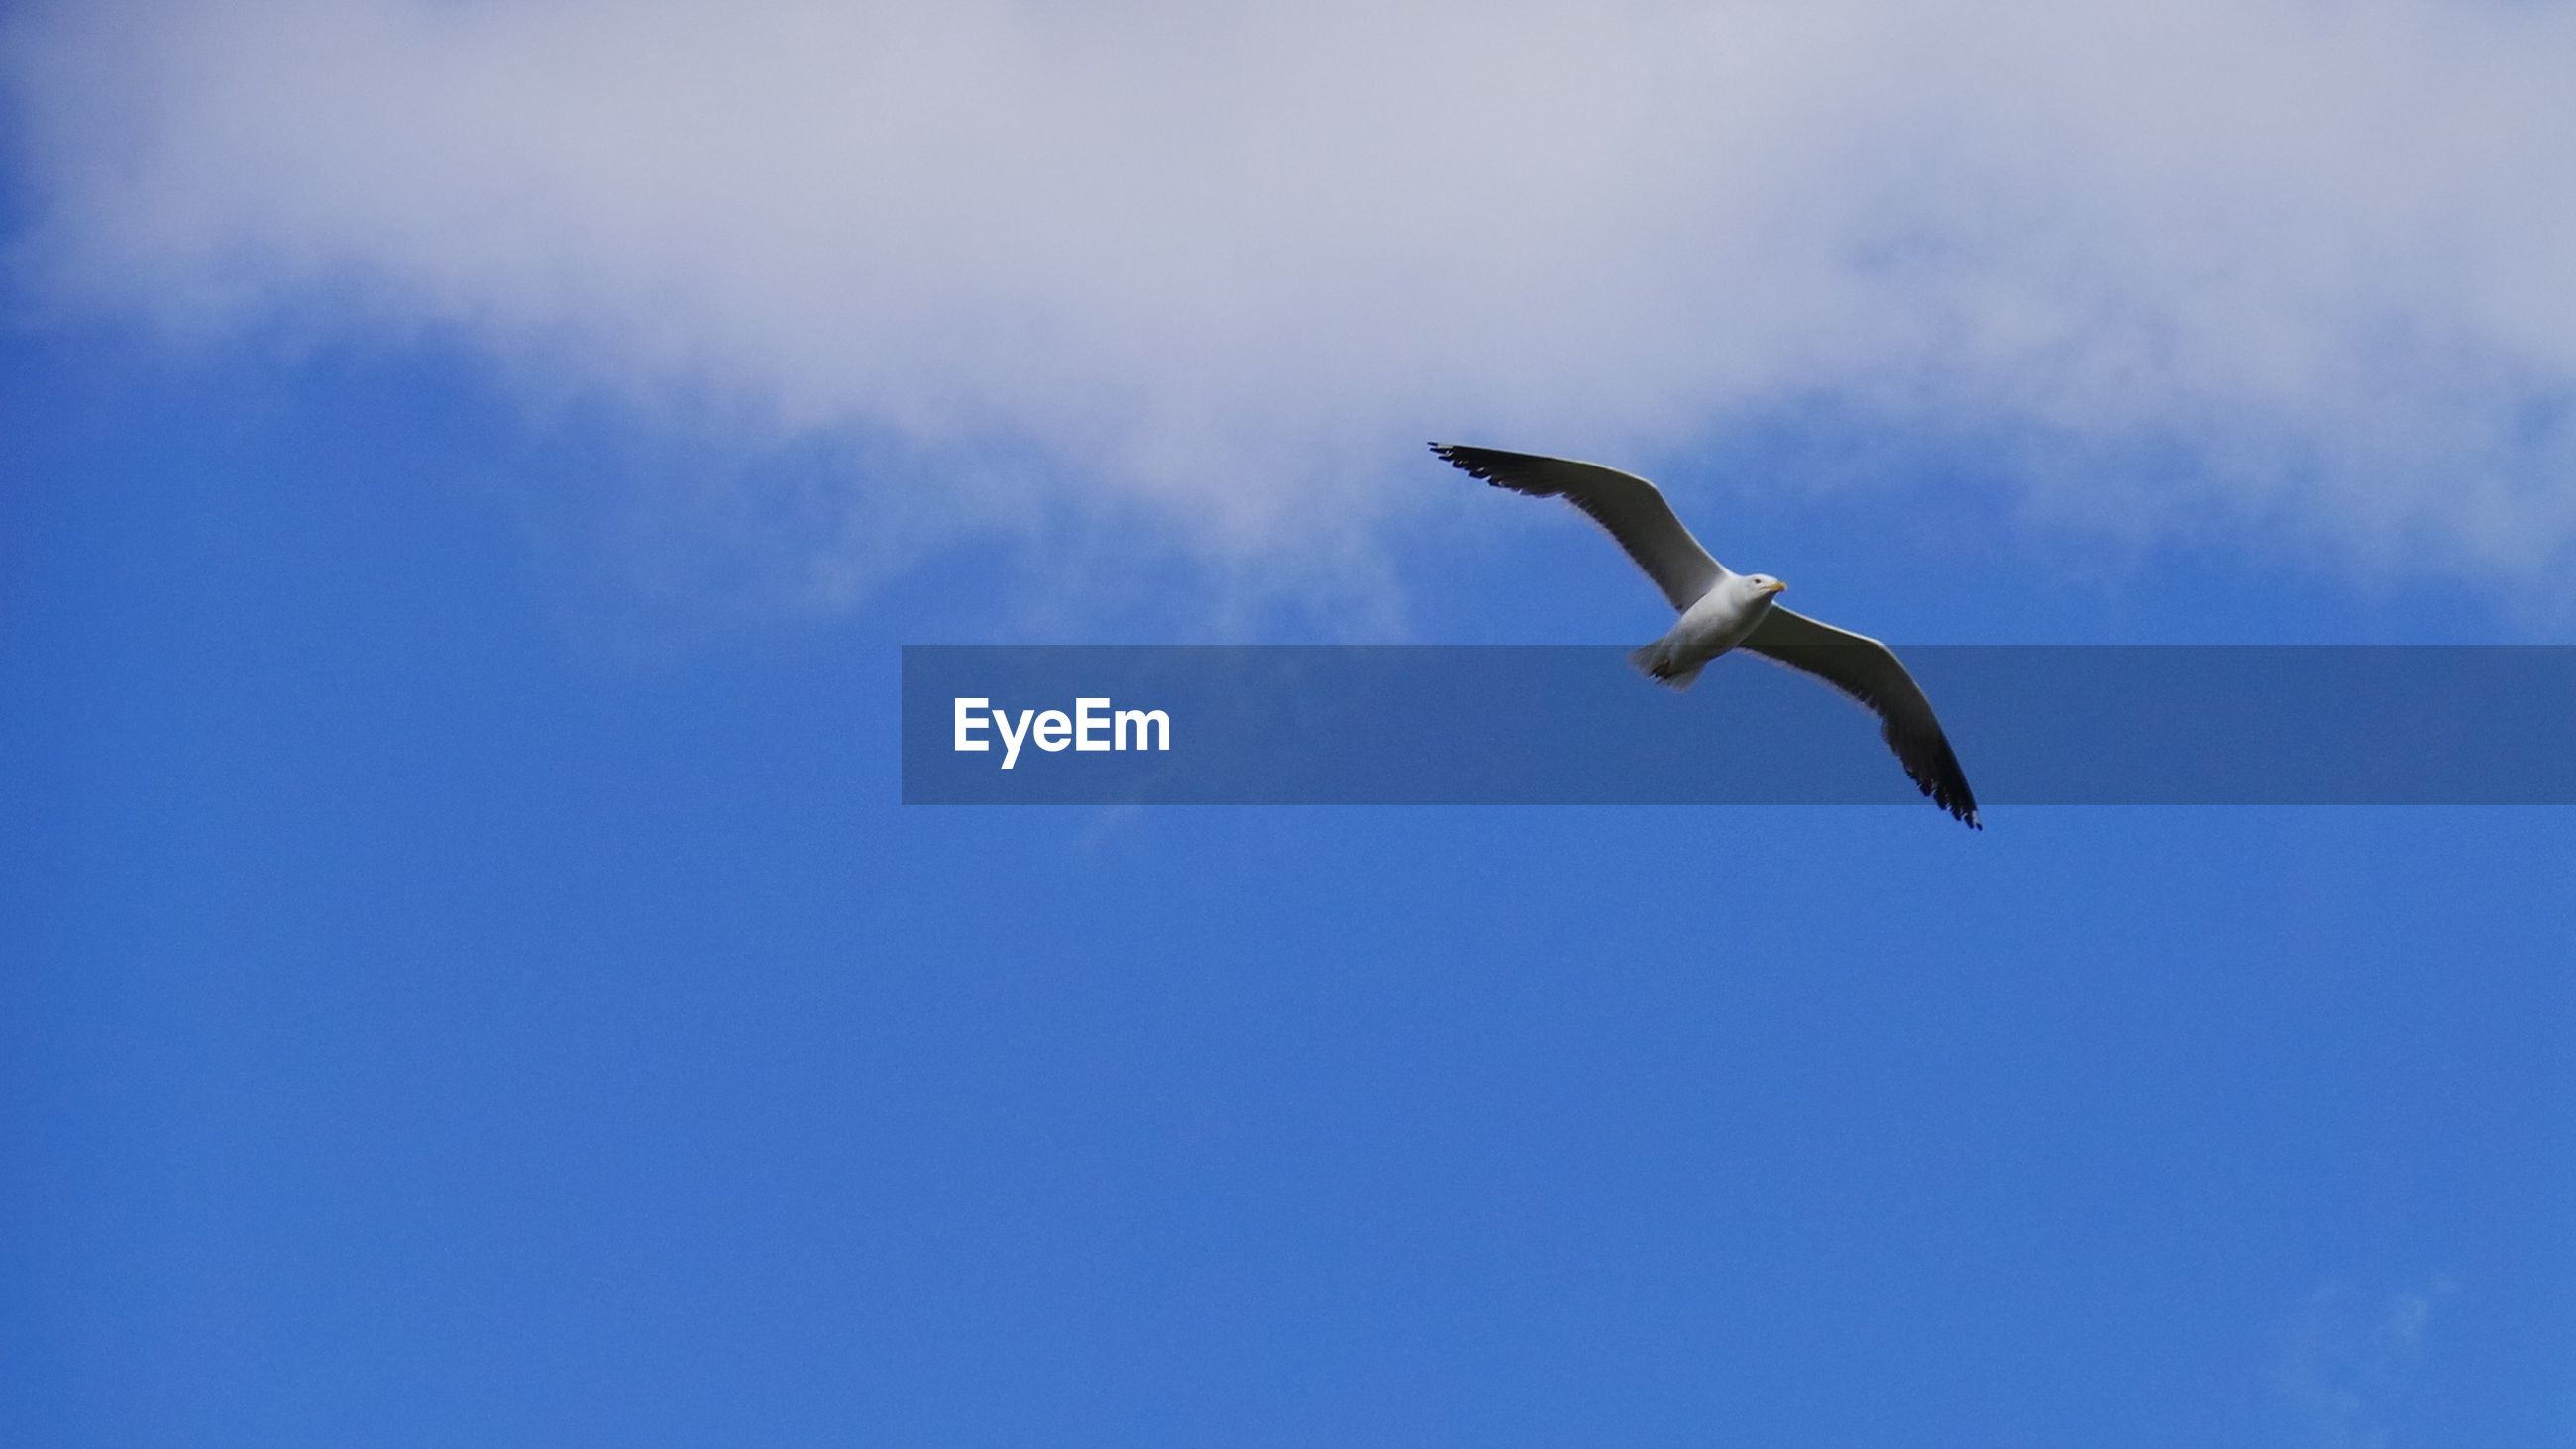 bird, animal themes, flying, animals in the wild, low angle view, wildlife, spread wings, one animal, mid-air, blue, sky, seagull, nature, full length, motion, cloud - sky, day, outdoors, freedom, beauty in nature